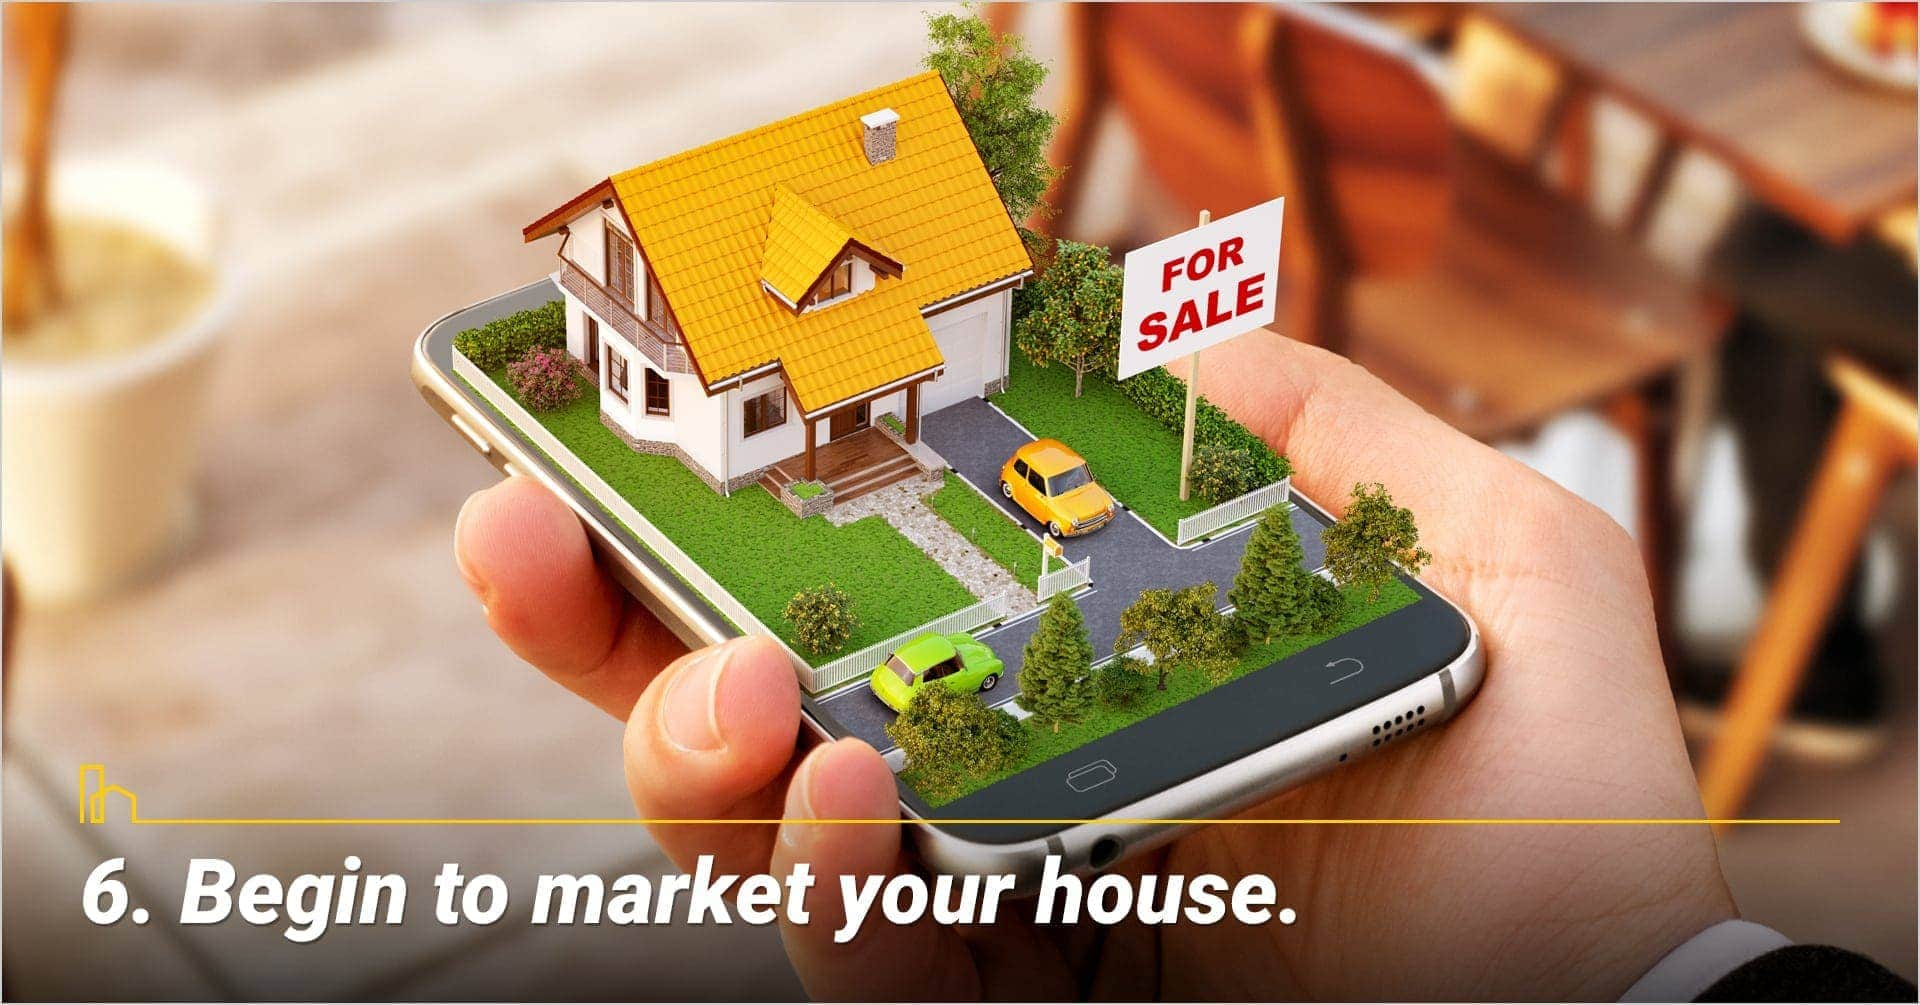 Begin to market your house